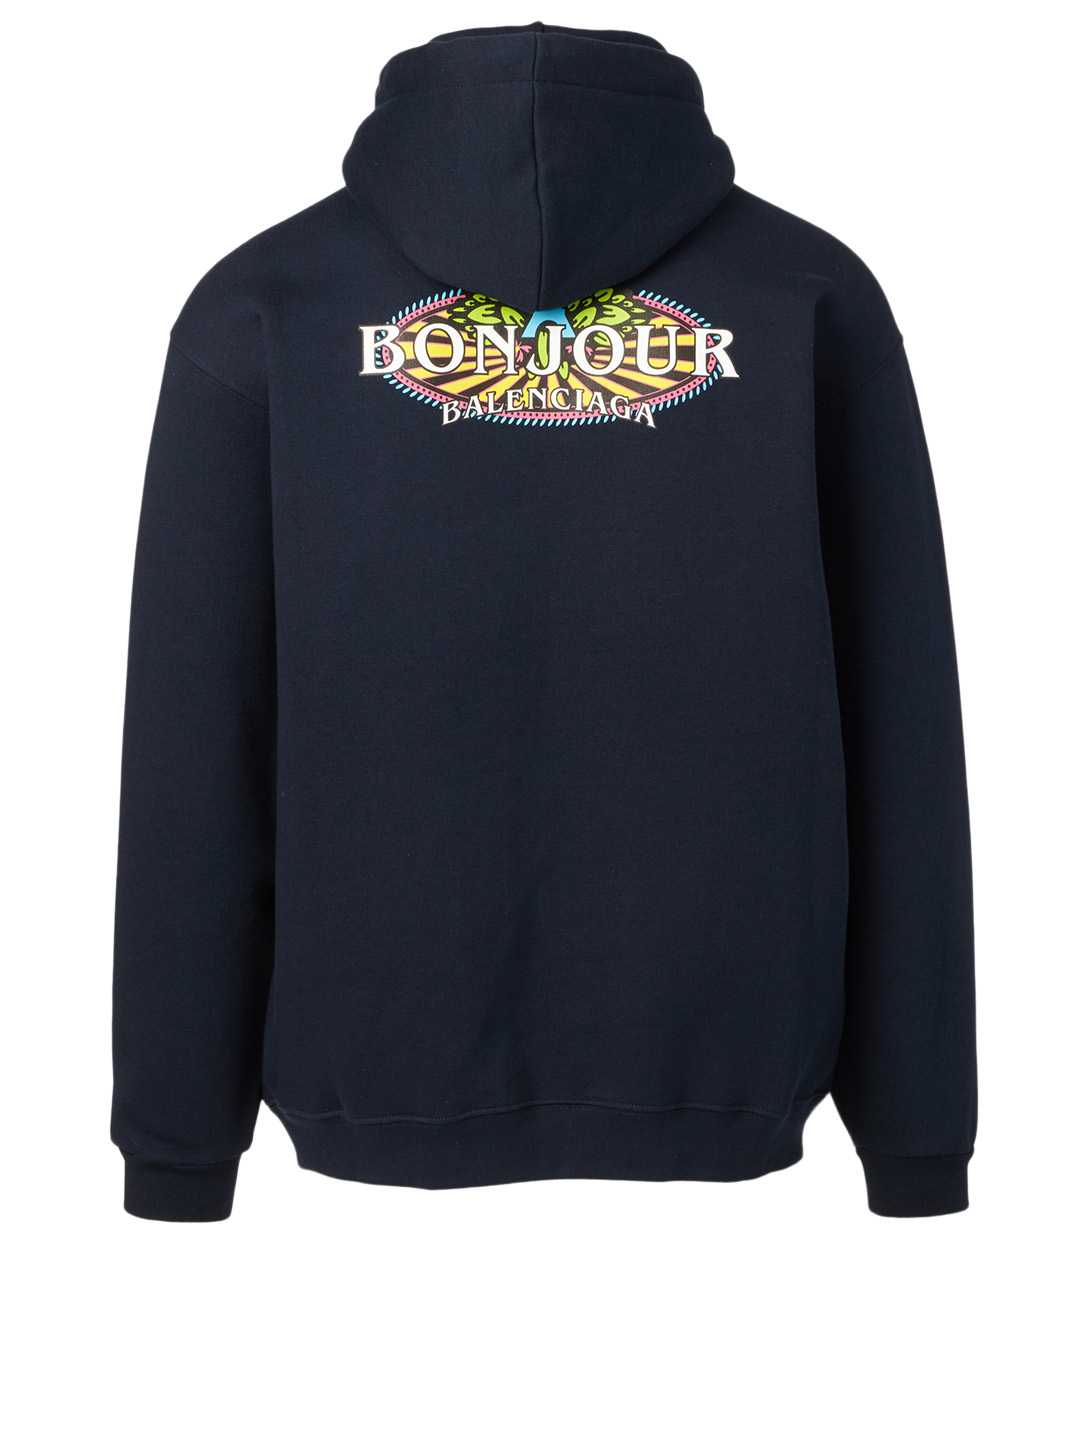 BALENCIAGA Bonjour Cotton Hoodie Men's Blue